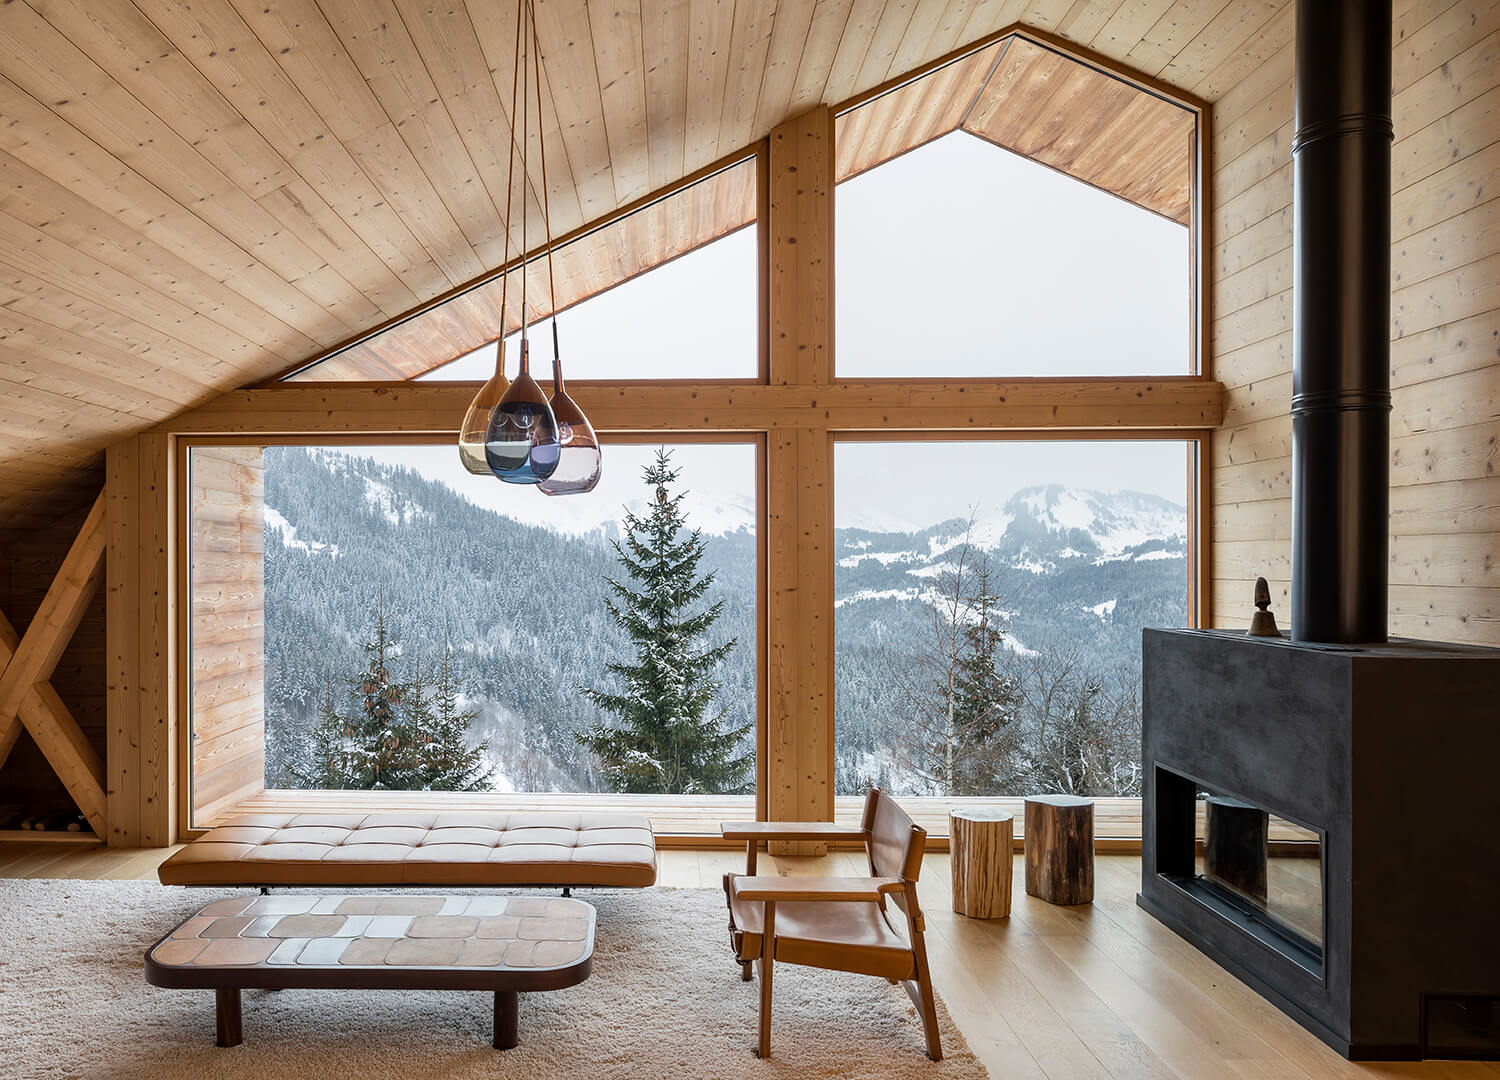 est living interiors alpine living studio razavir mountain house olivier martin gambier.05